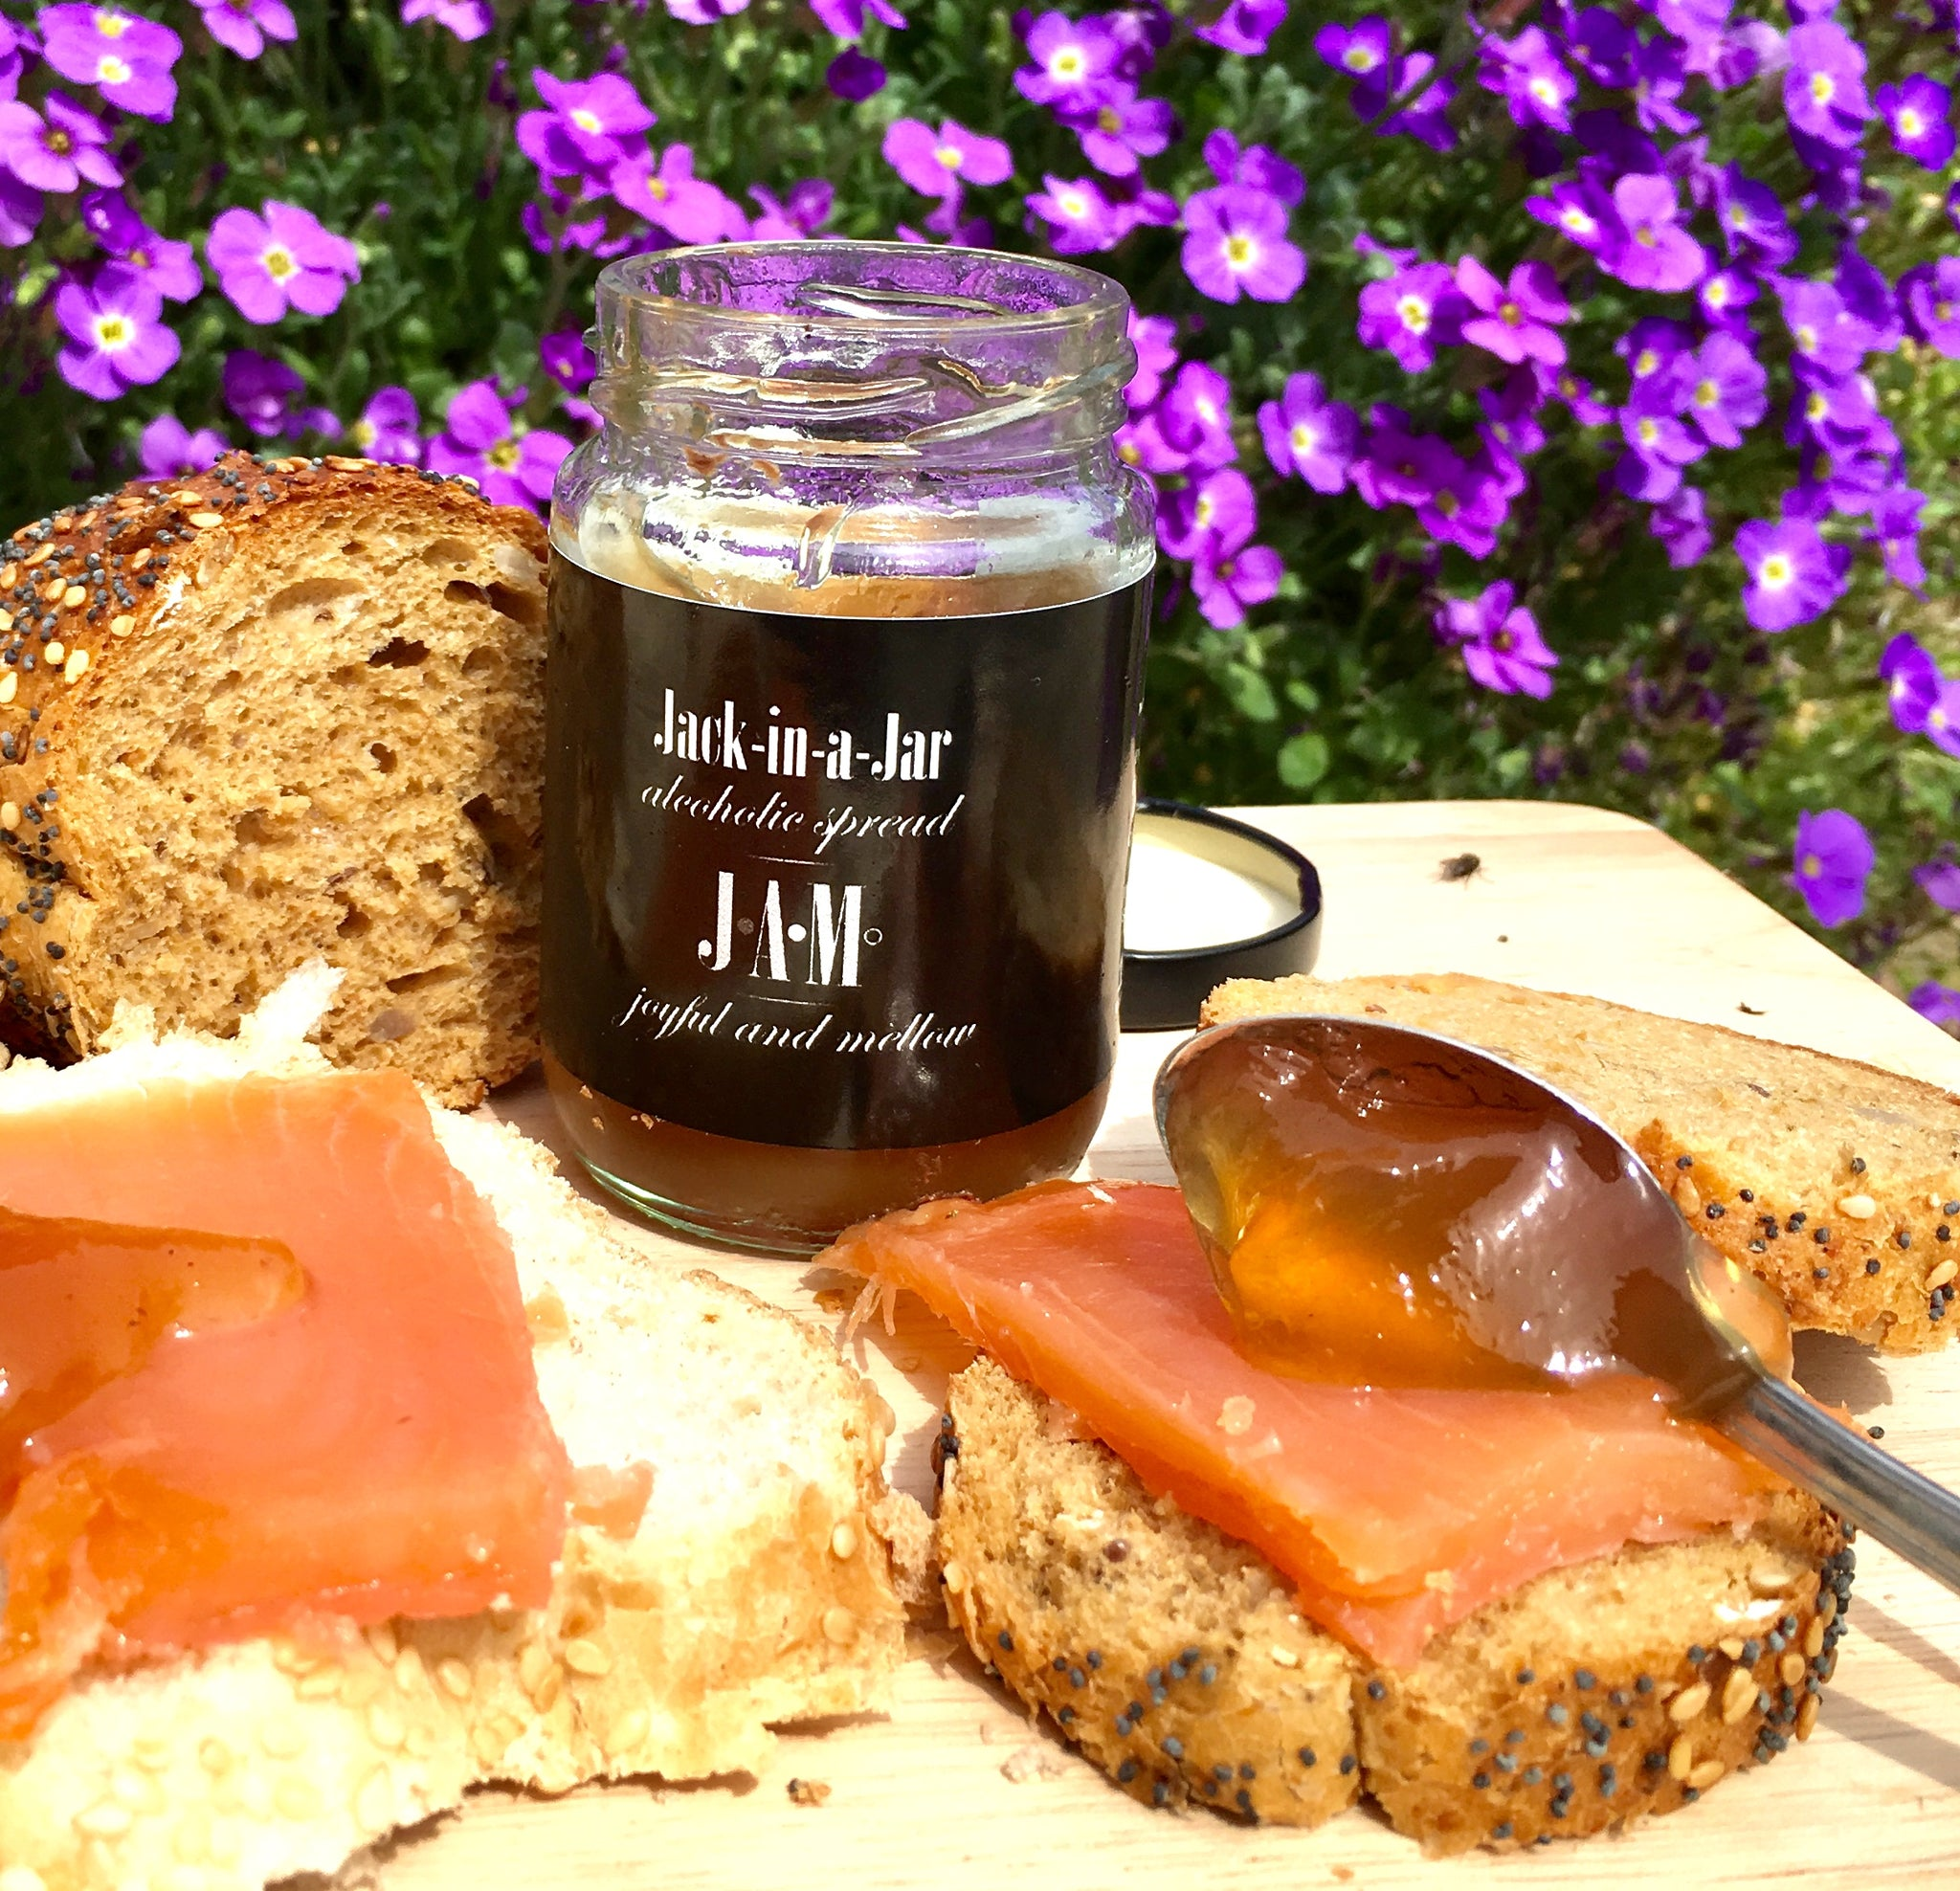 Jack-in-a-Jar Alcoholic Spread 100g - 60.8% Bourbon -15.5% ABV